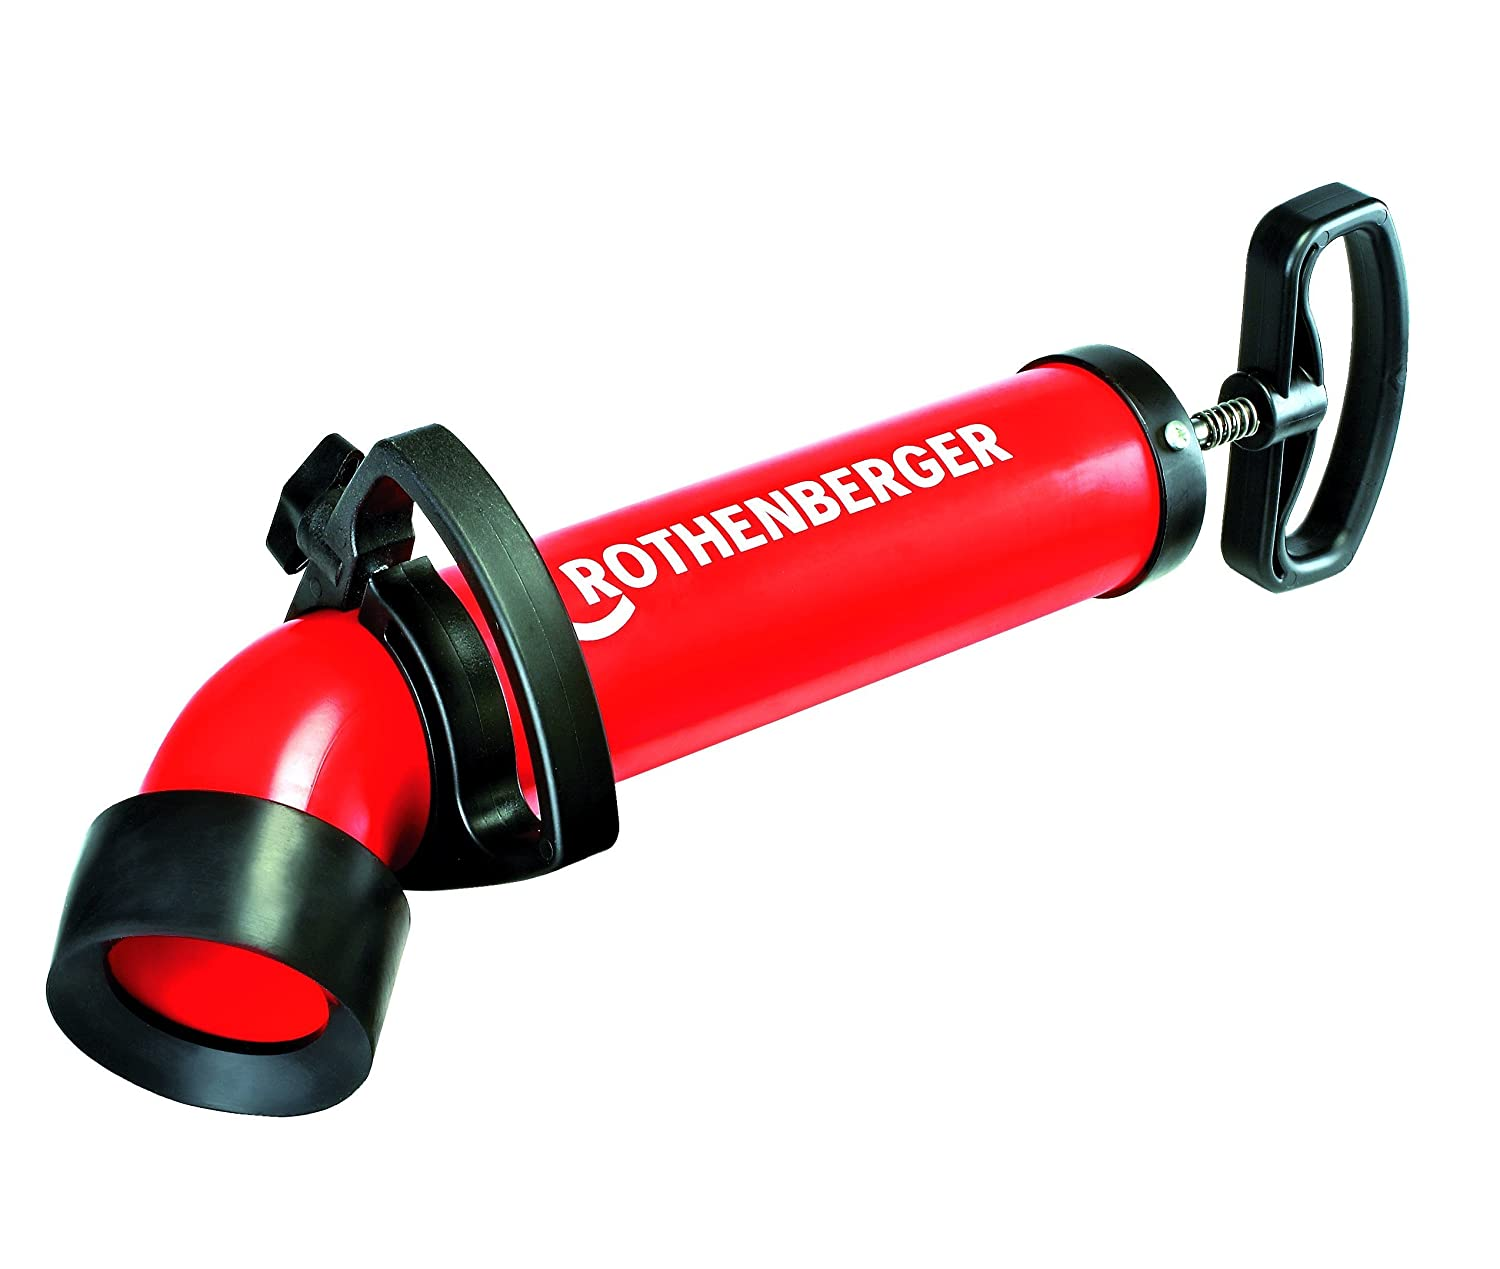 Rothenberger 072070X - Bomba desatascad. ropump super plus 7.2070X